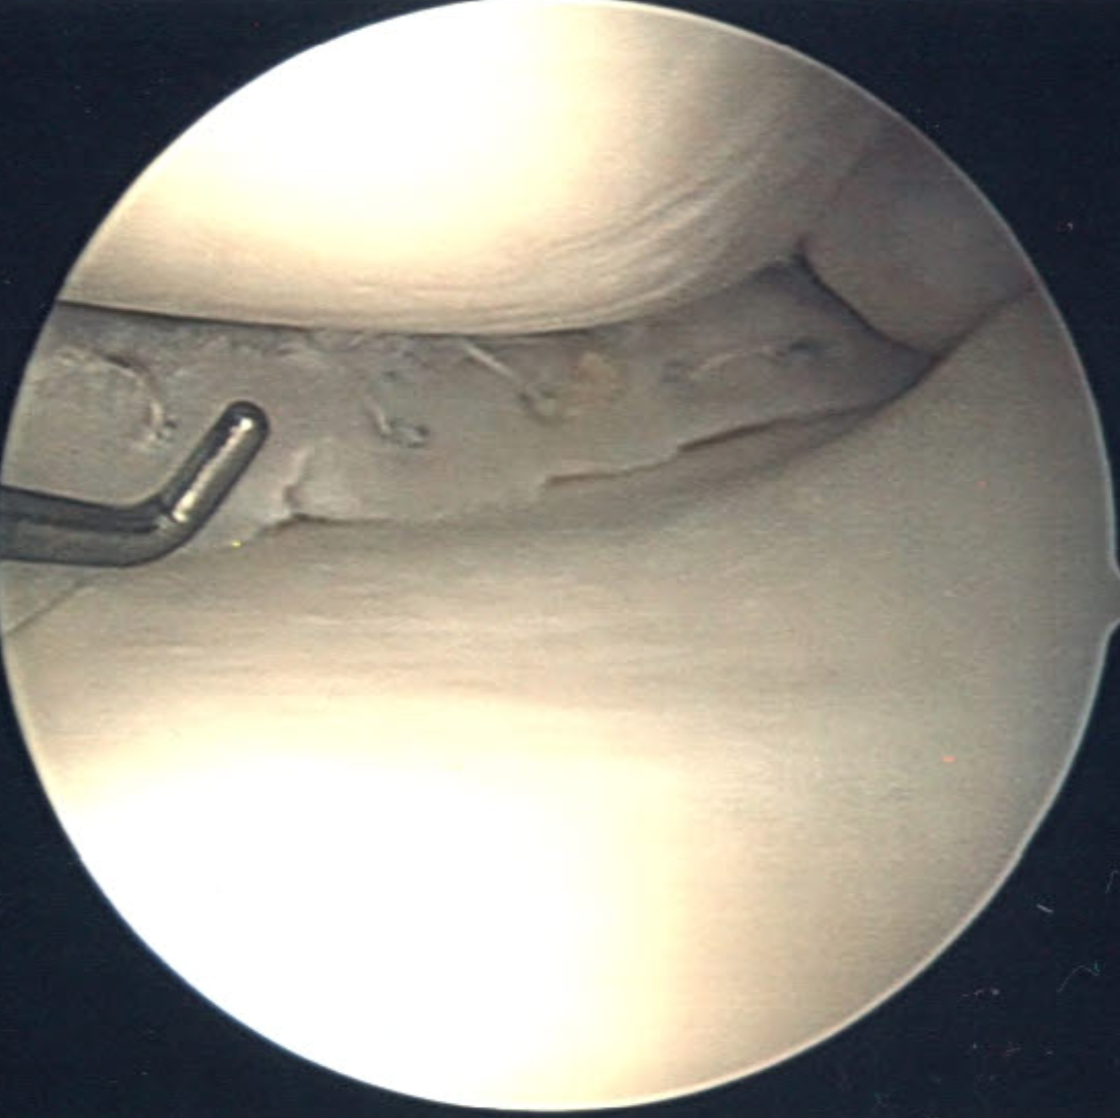 Arthroscopic repair of bucket-handle medial meniscal tear